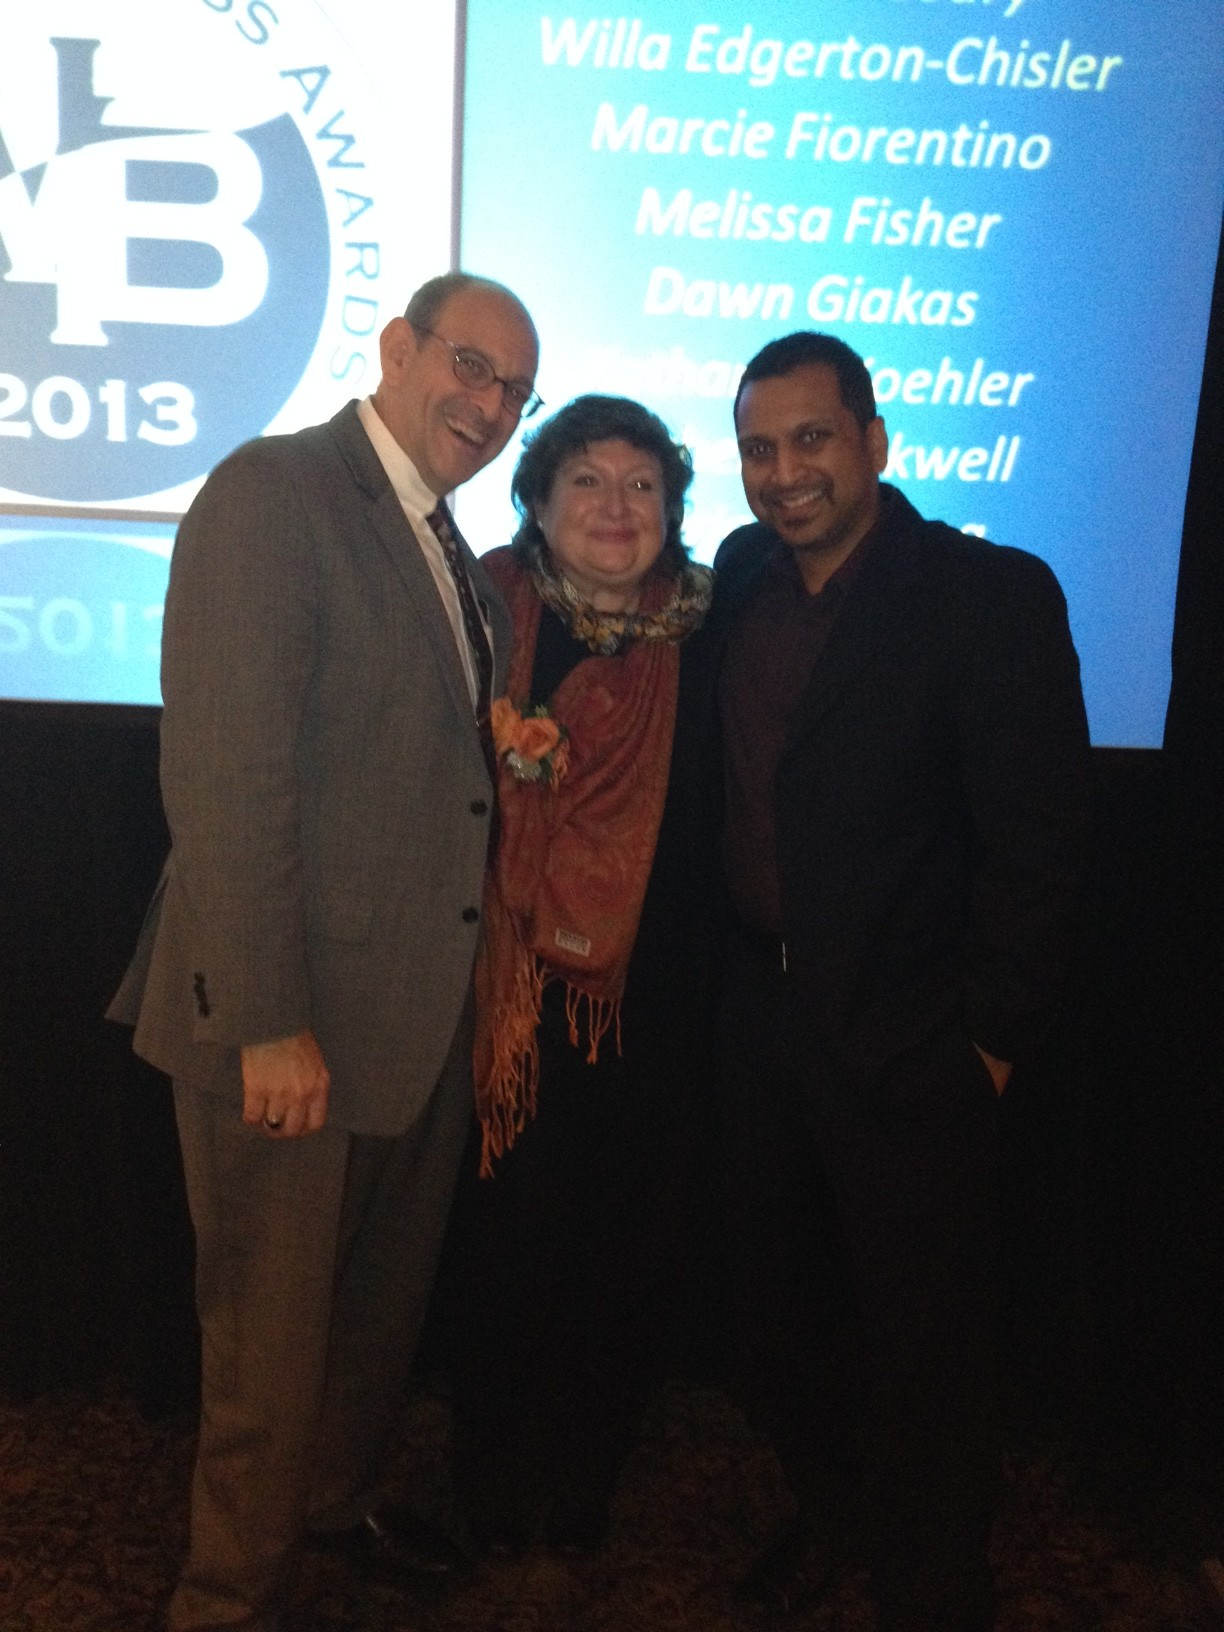 Marcela Zuchovicki with Sunny Kancherla and Vincent Vicari from SBDC at the Women in Business Award Banquet